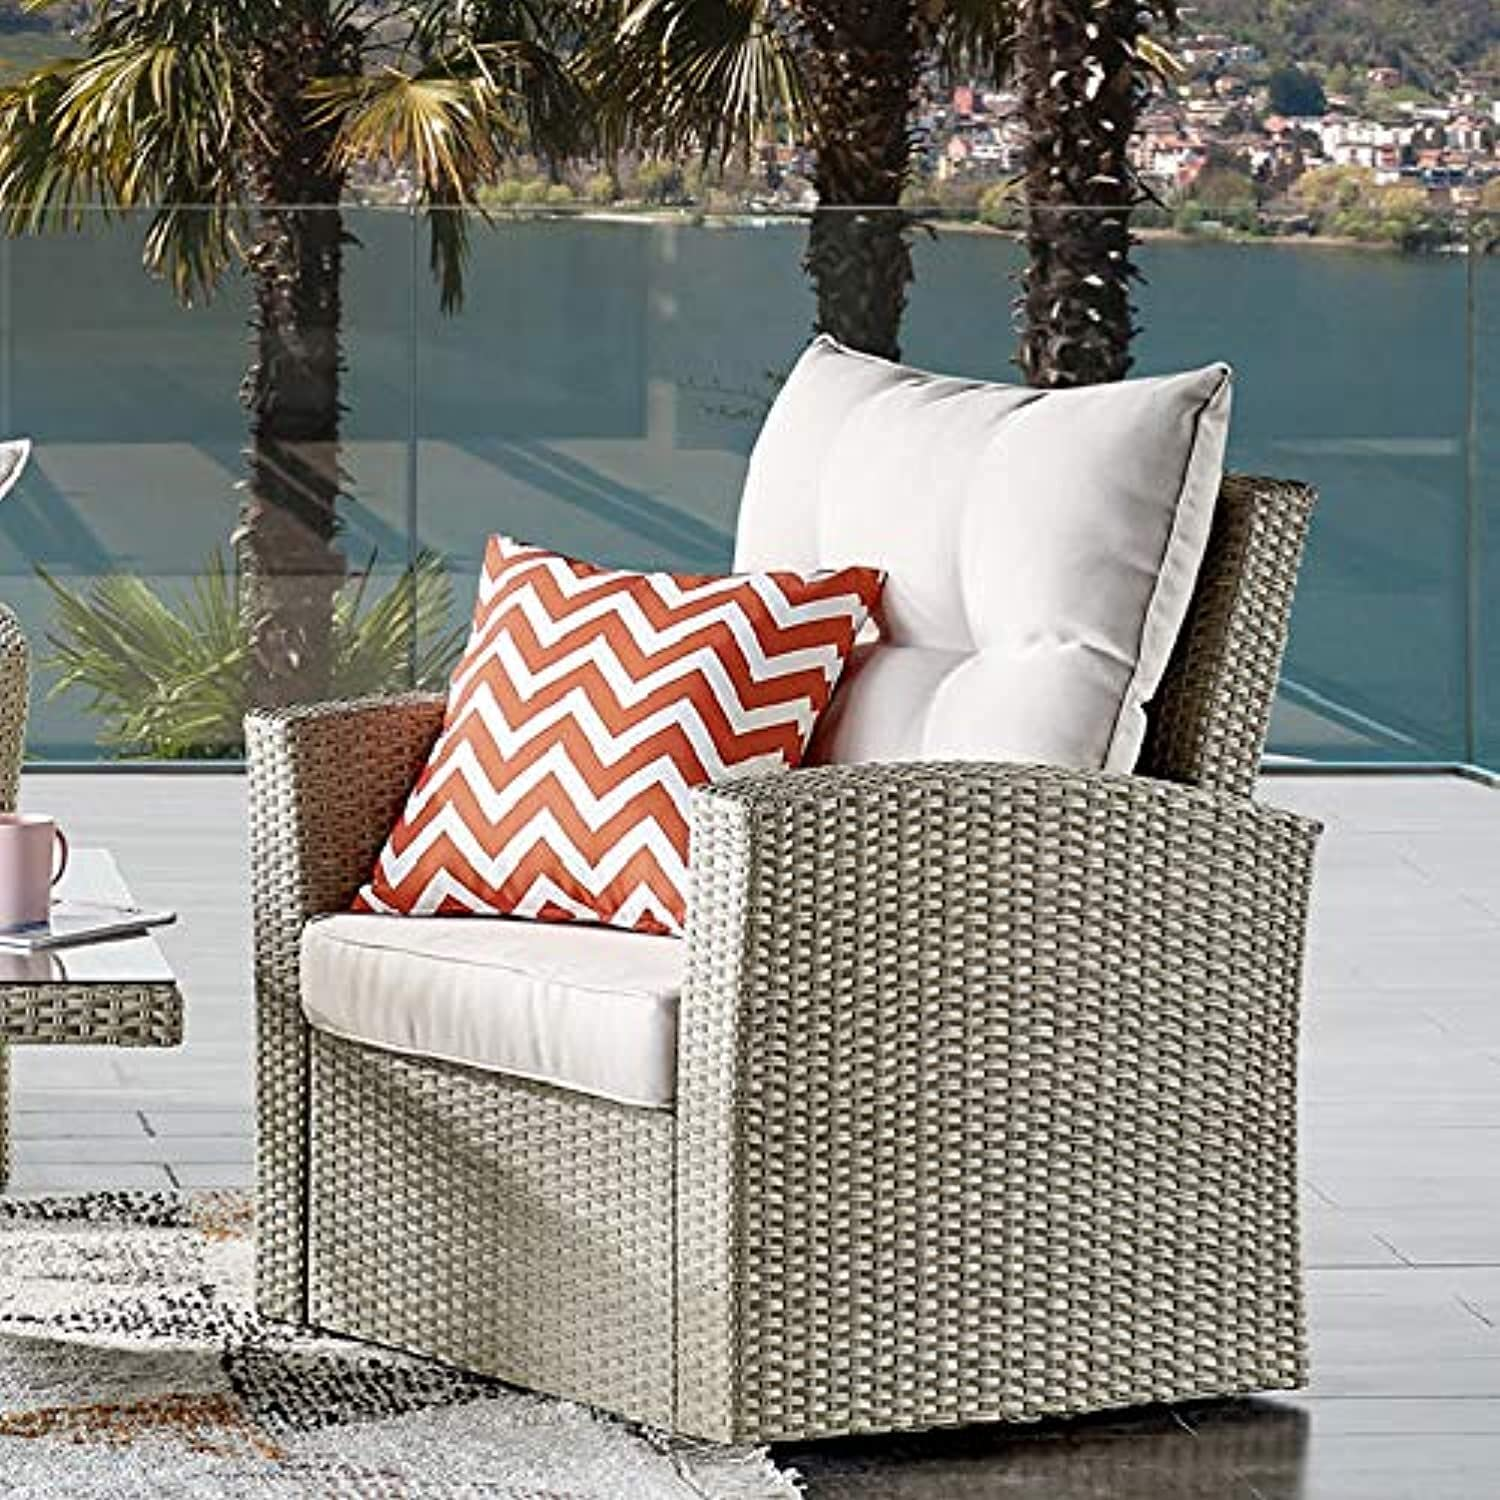 Bolton Furniture Canaan All-Weather Wicker Outdoor Armchair with Cushions, Cream